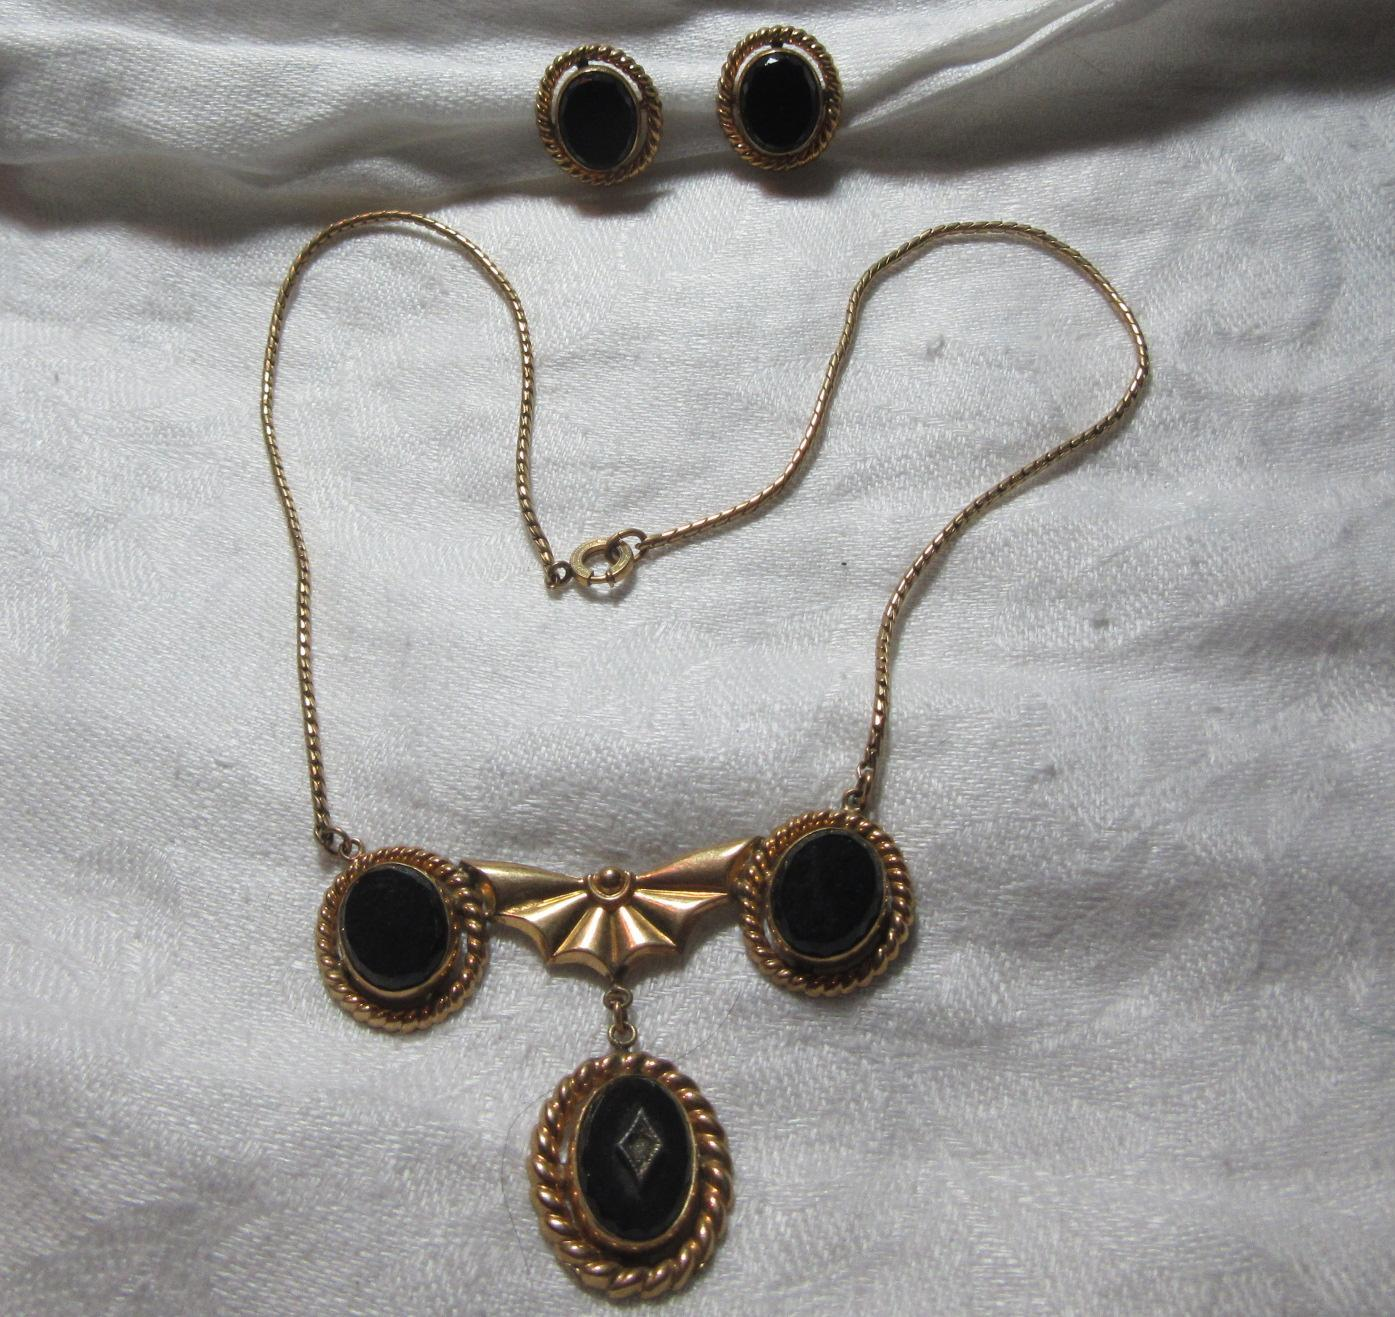 Gold Filled & Black Onyx Pendant Necklace & Earring Set